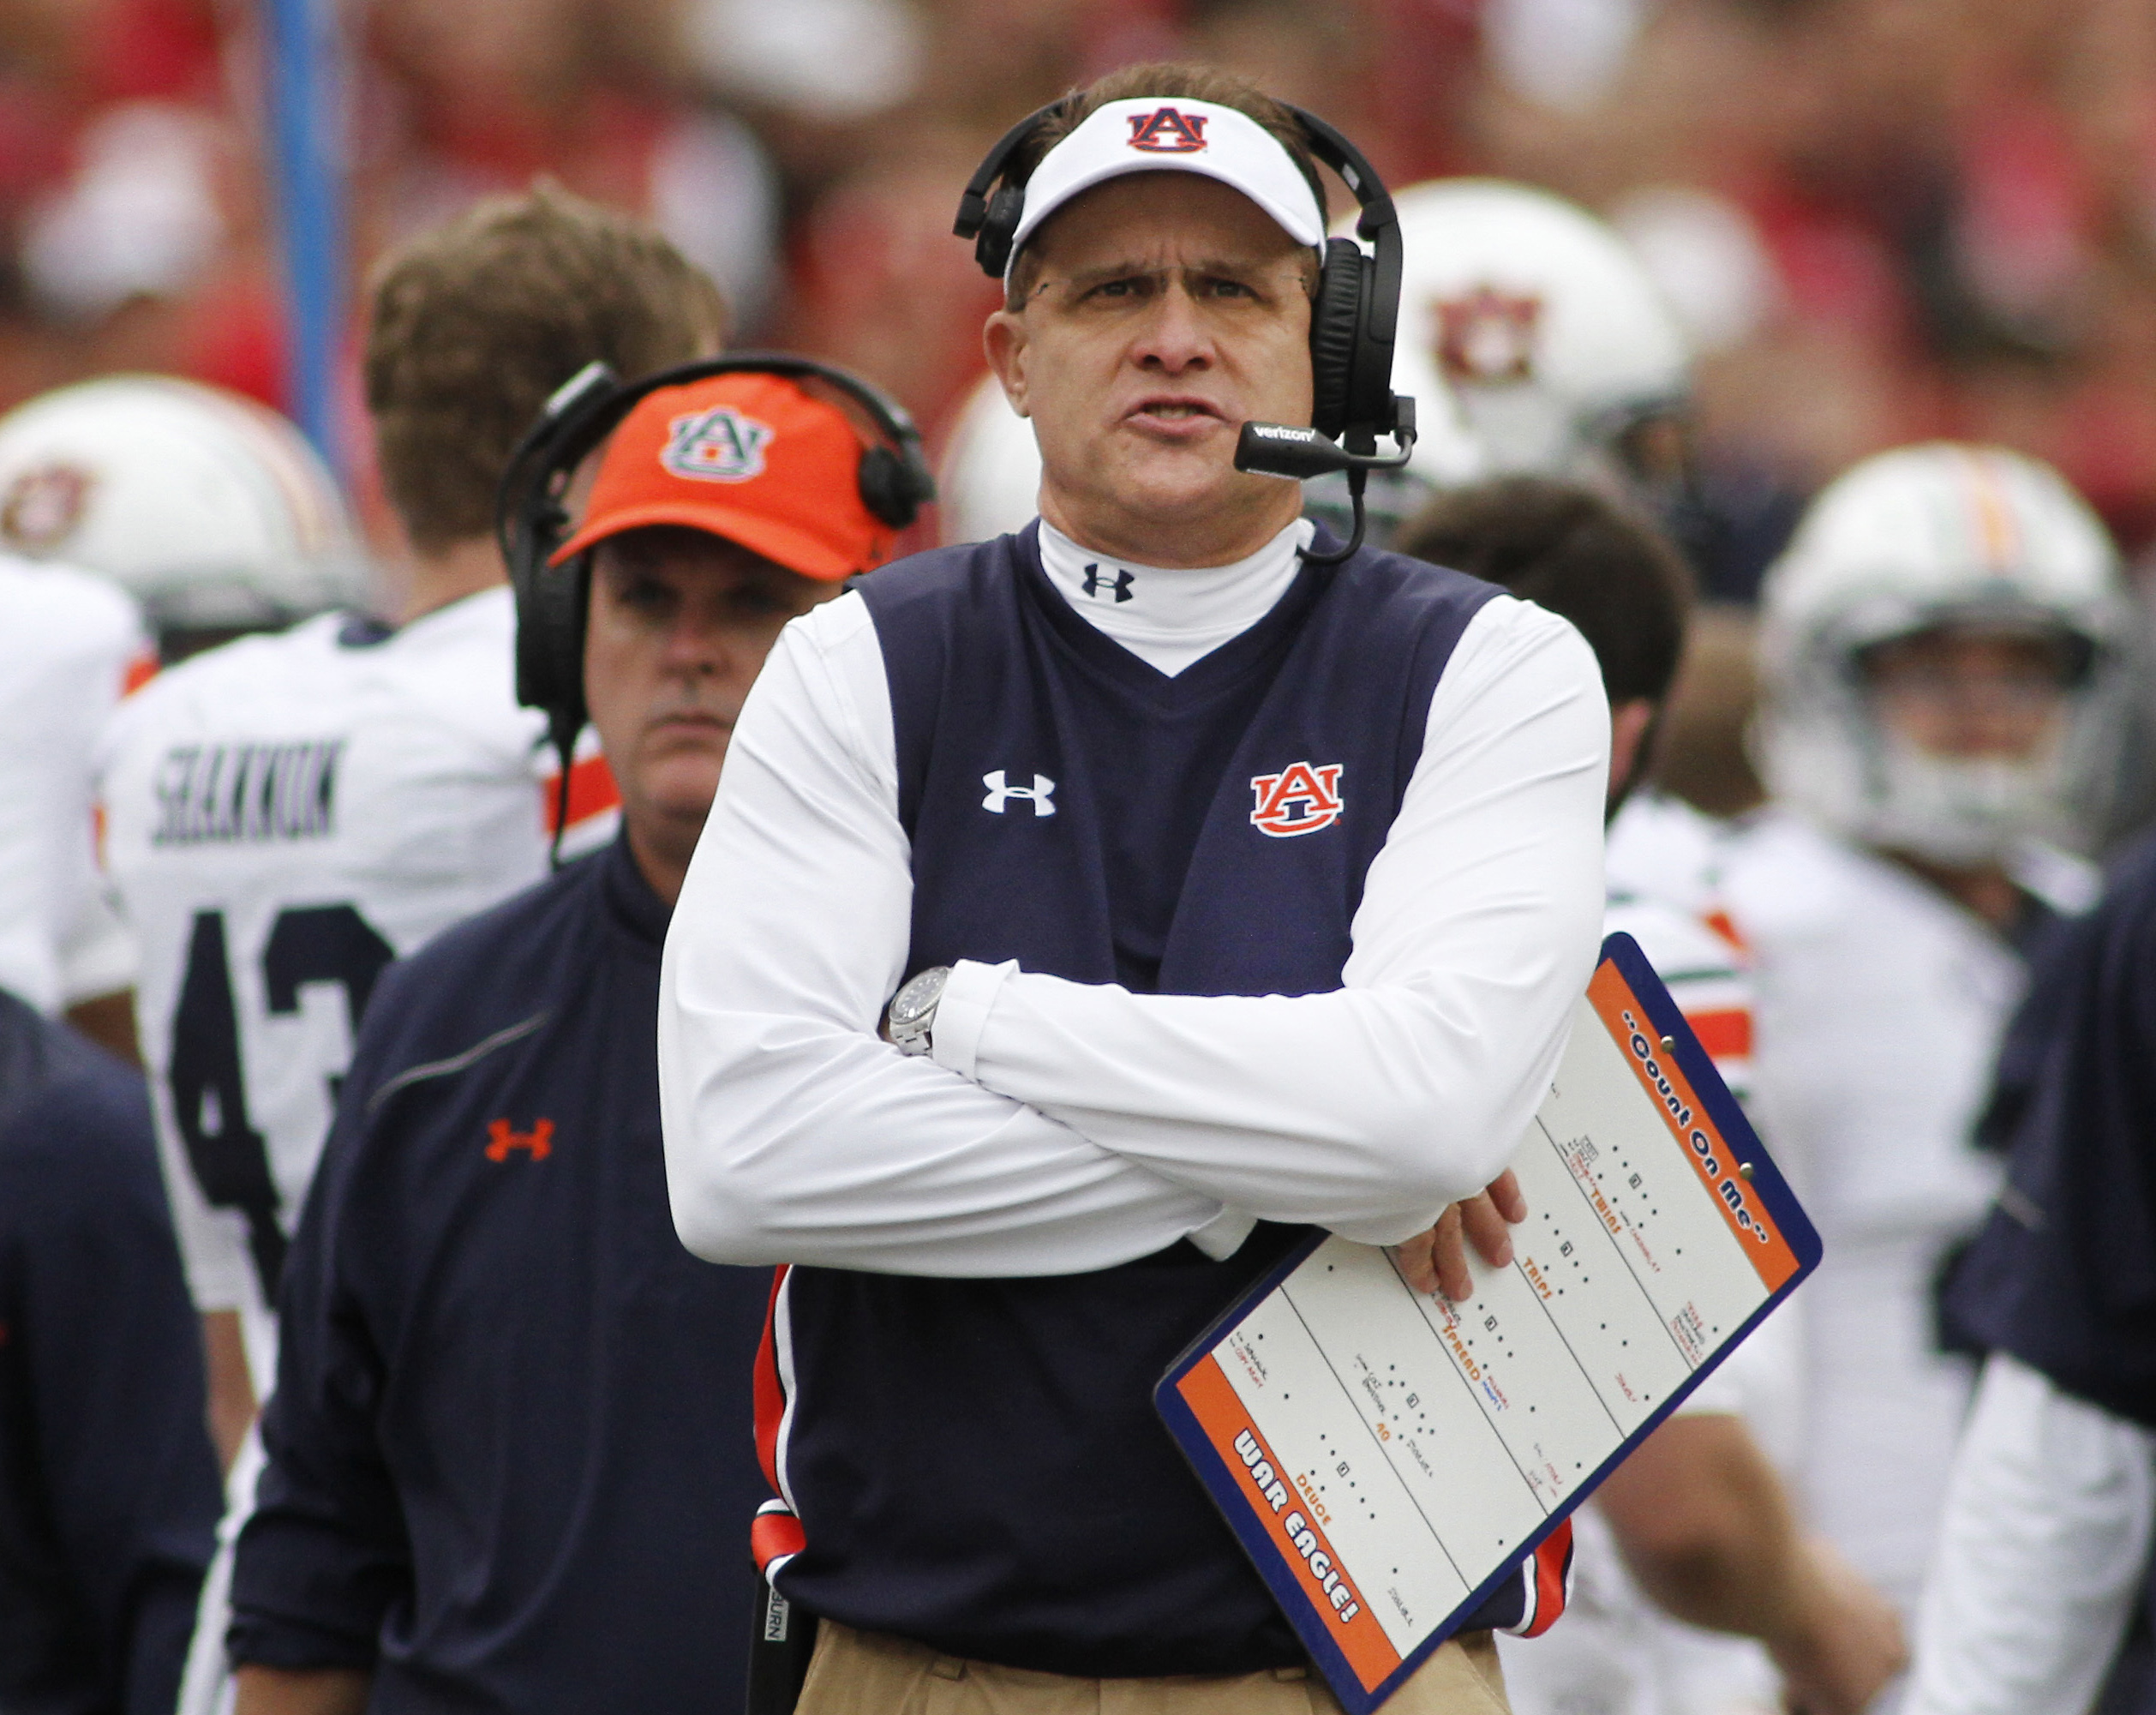 FILE - In this Oct. 24, 2015, file photo, Auburn coach Gus Malzahn looks to the scoreboard during an NCAA college football game against Arkansas in Fayetteville, Ark. (AP Photo/Samantha Baker, File)